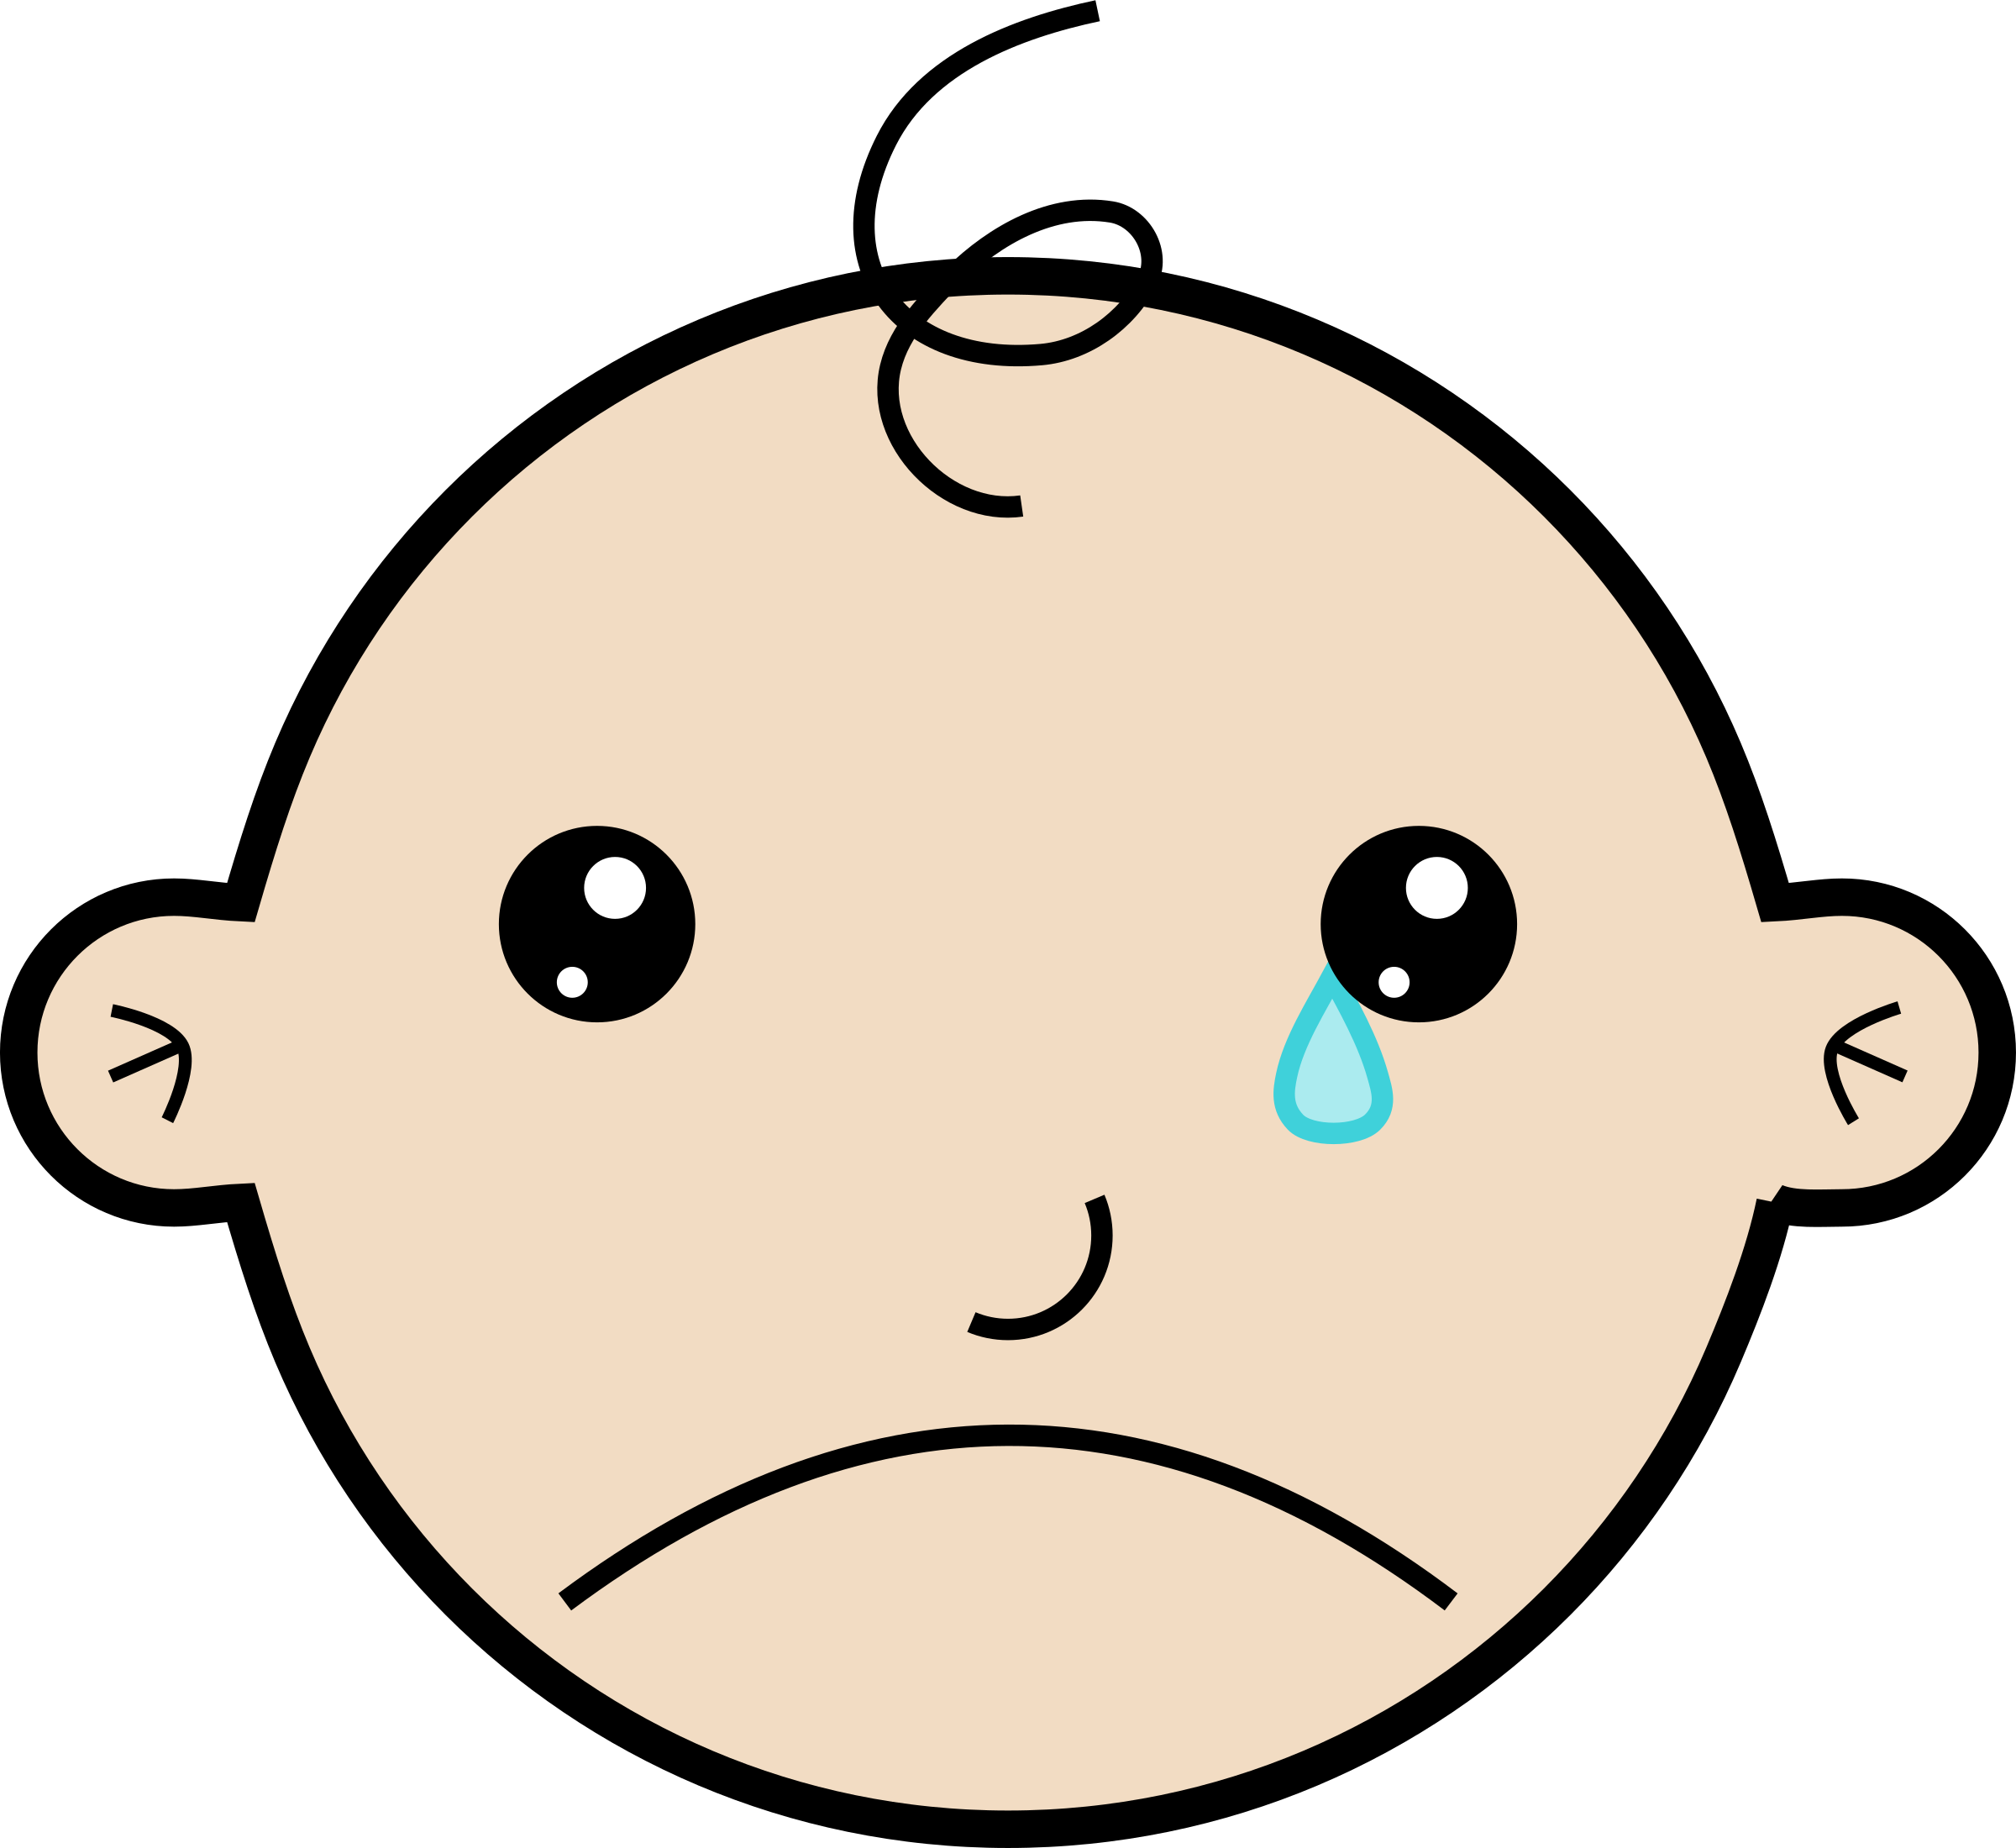 Baby crying big image. Babies clipart easy